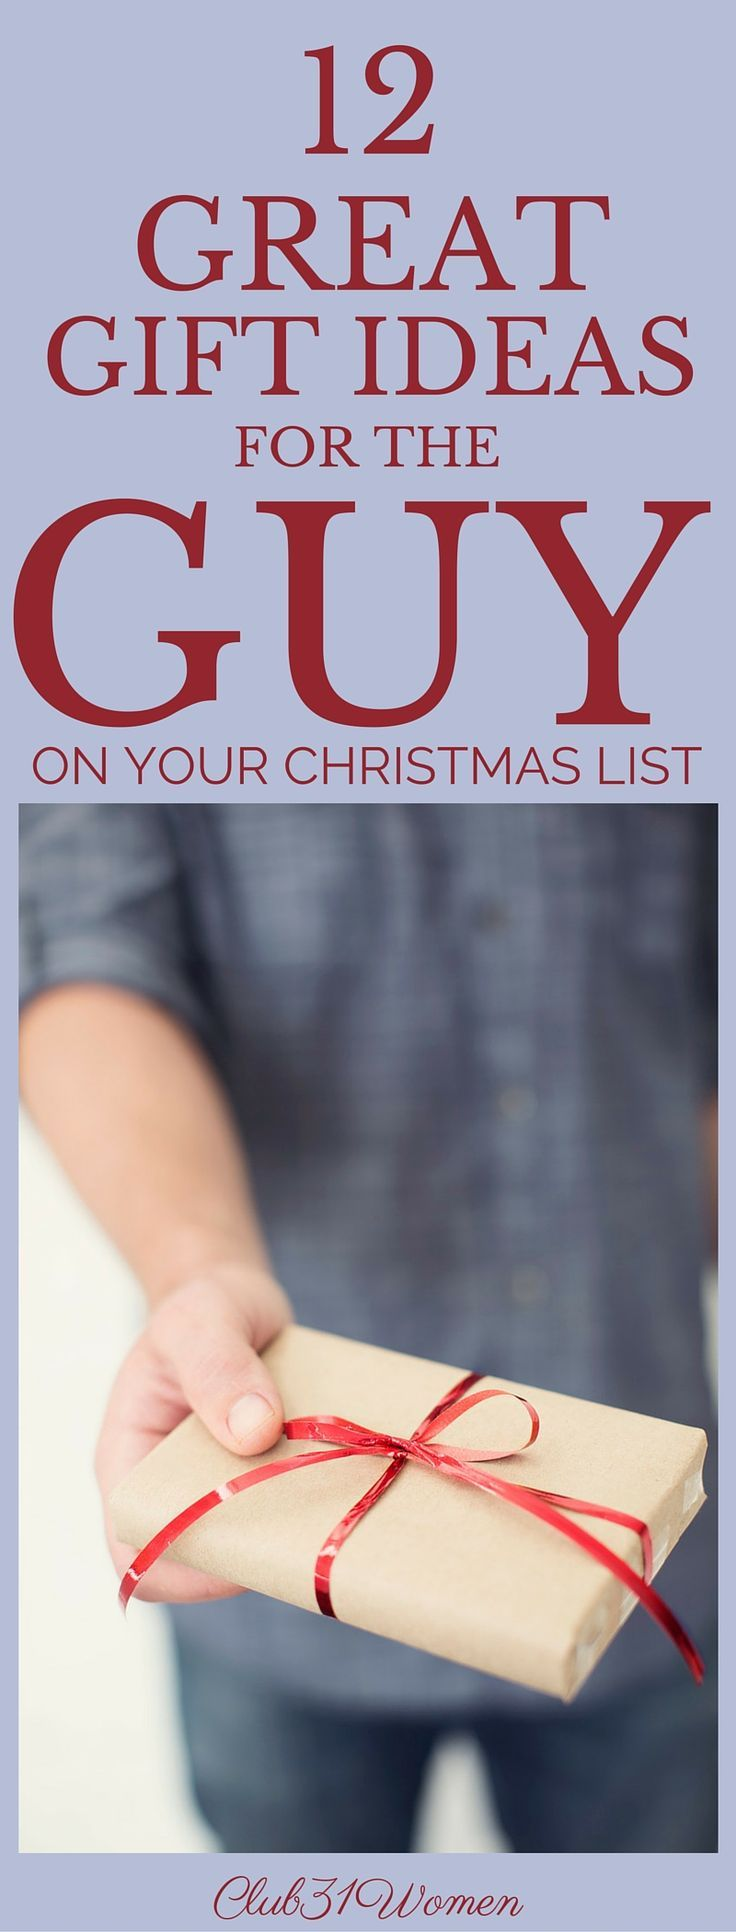 What to give a guy your dating for christmas